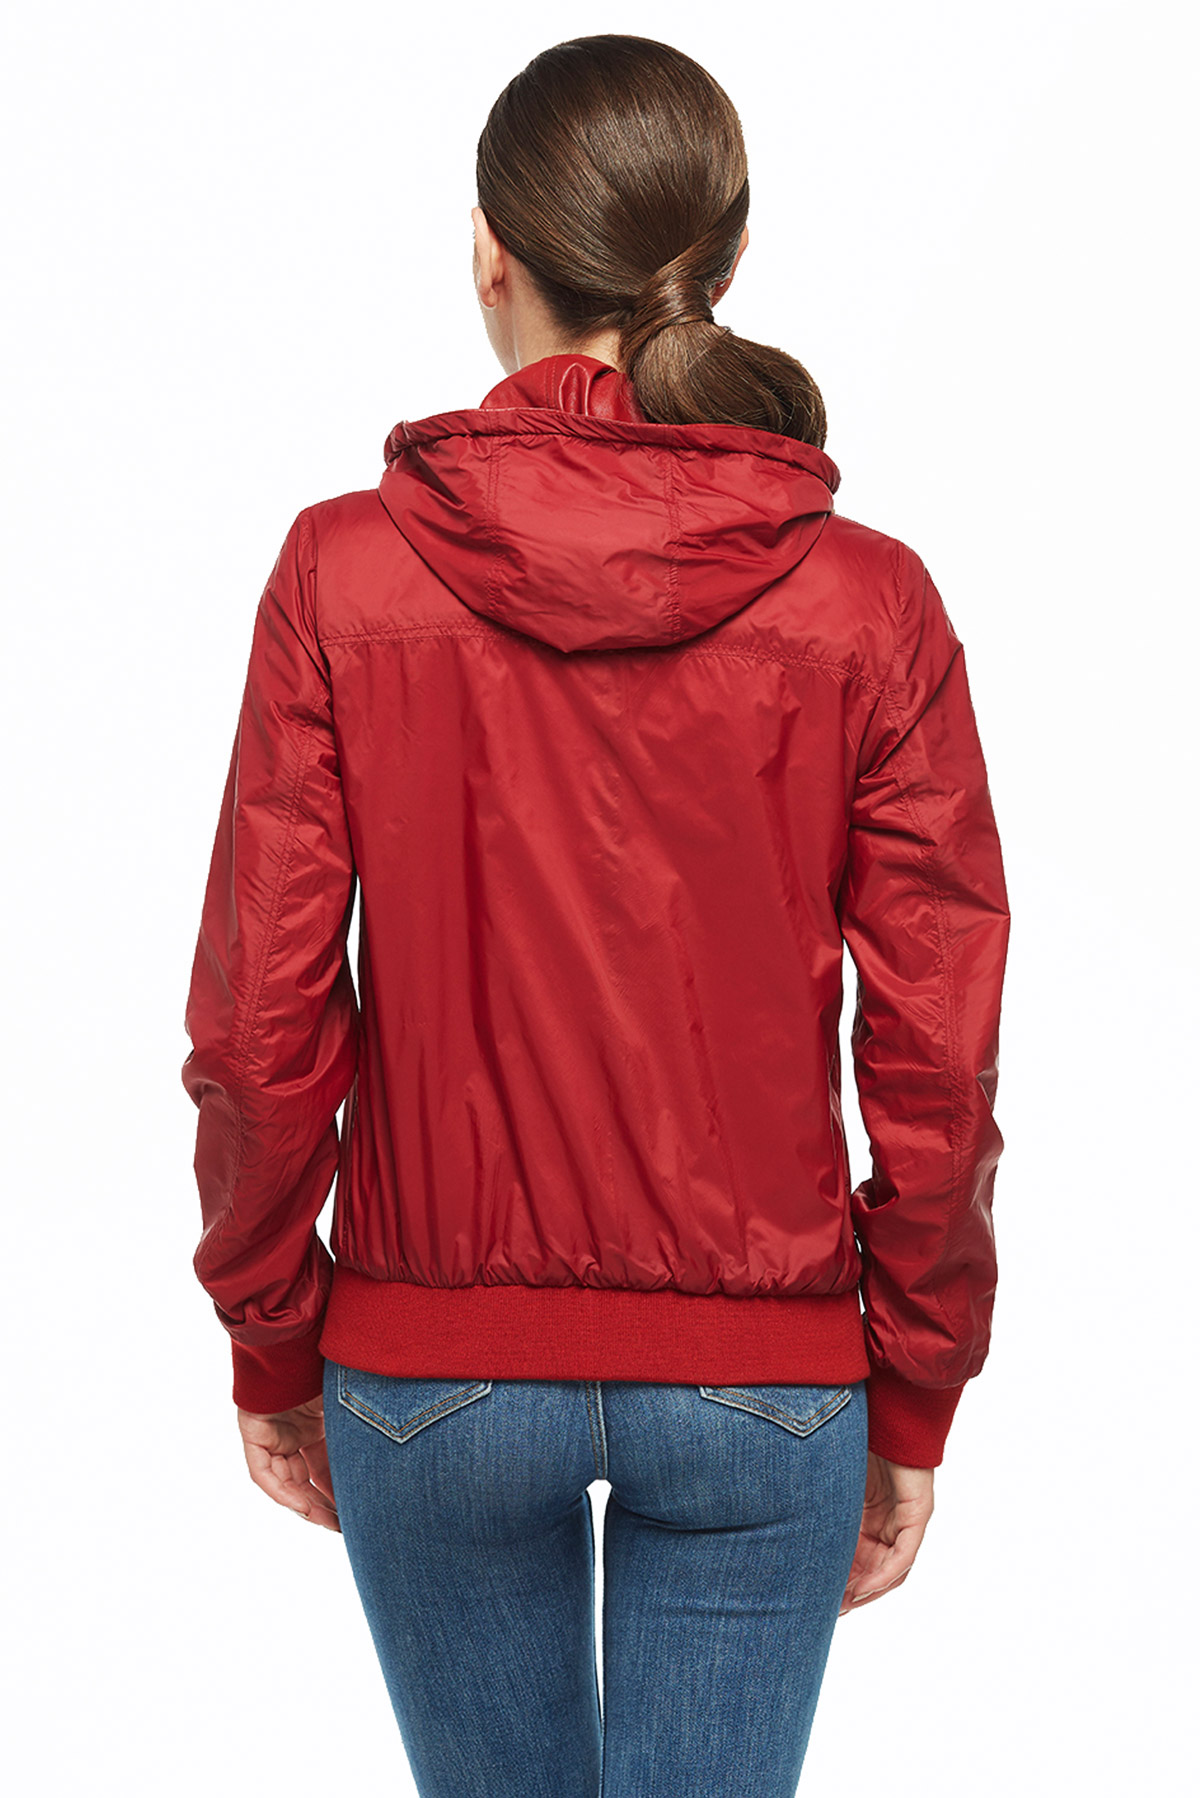 best red reversible bomber leather jacket